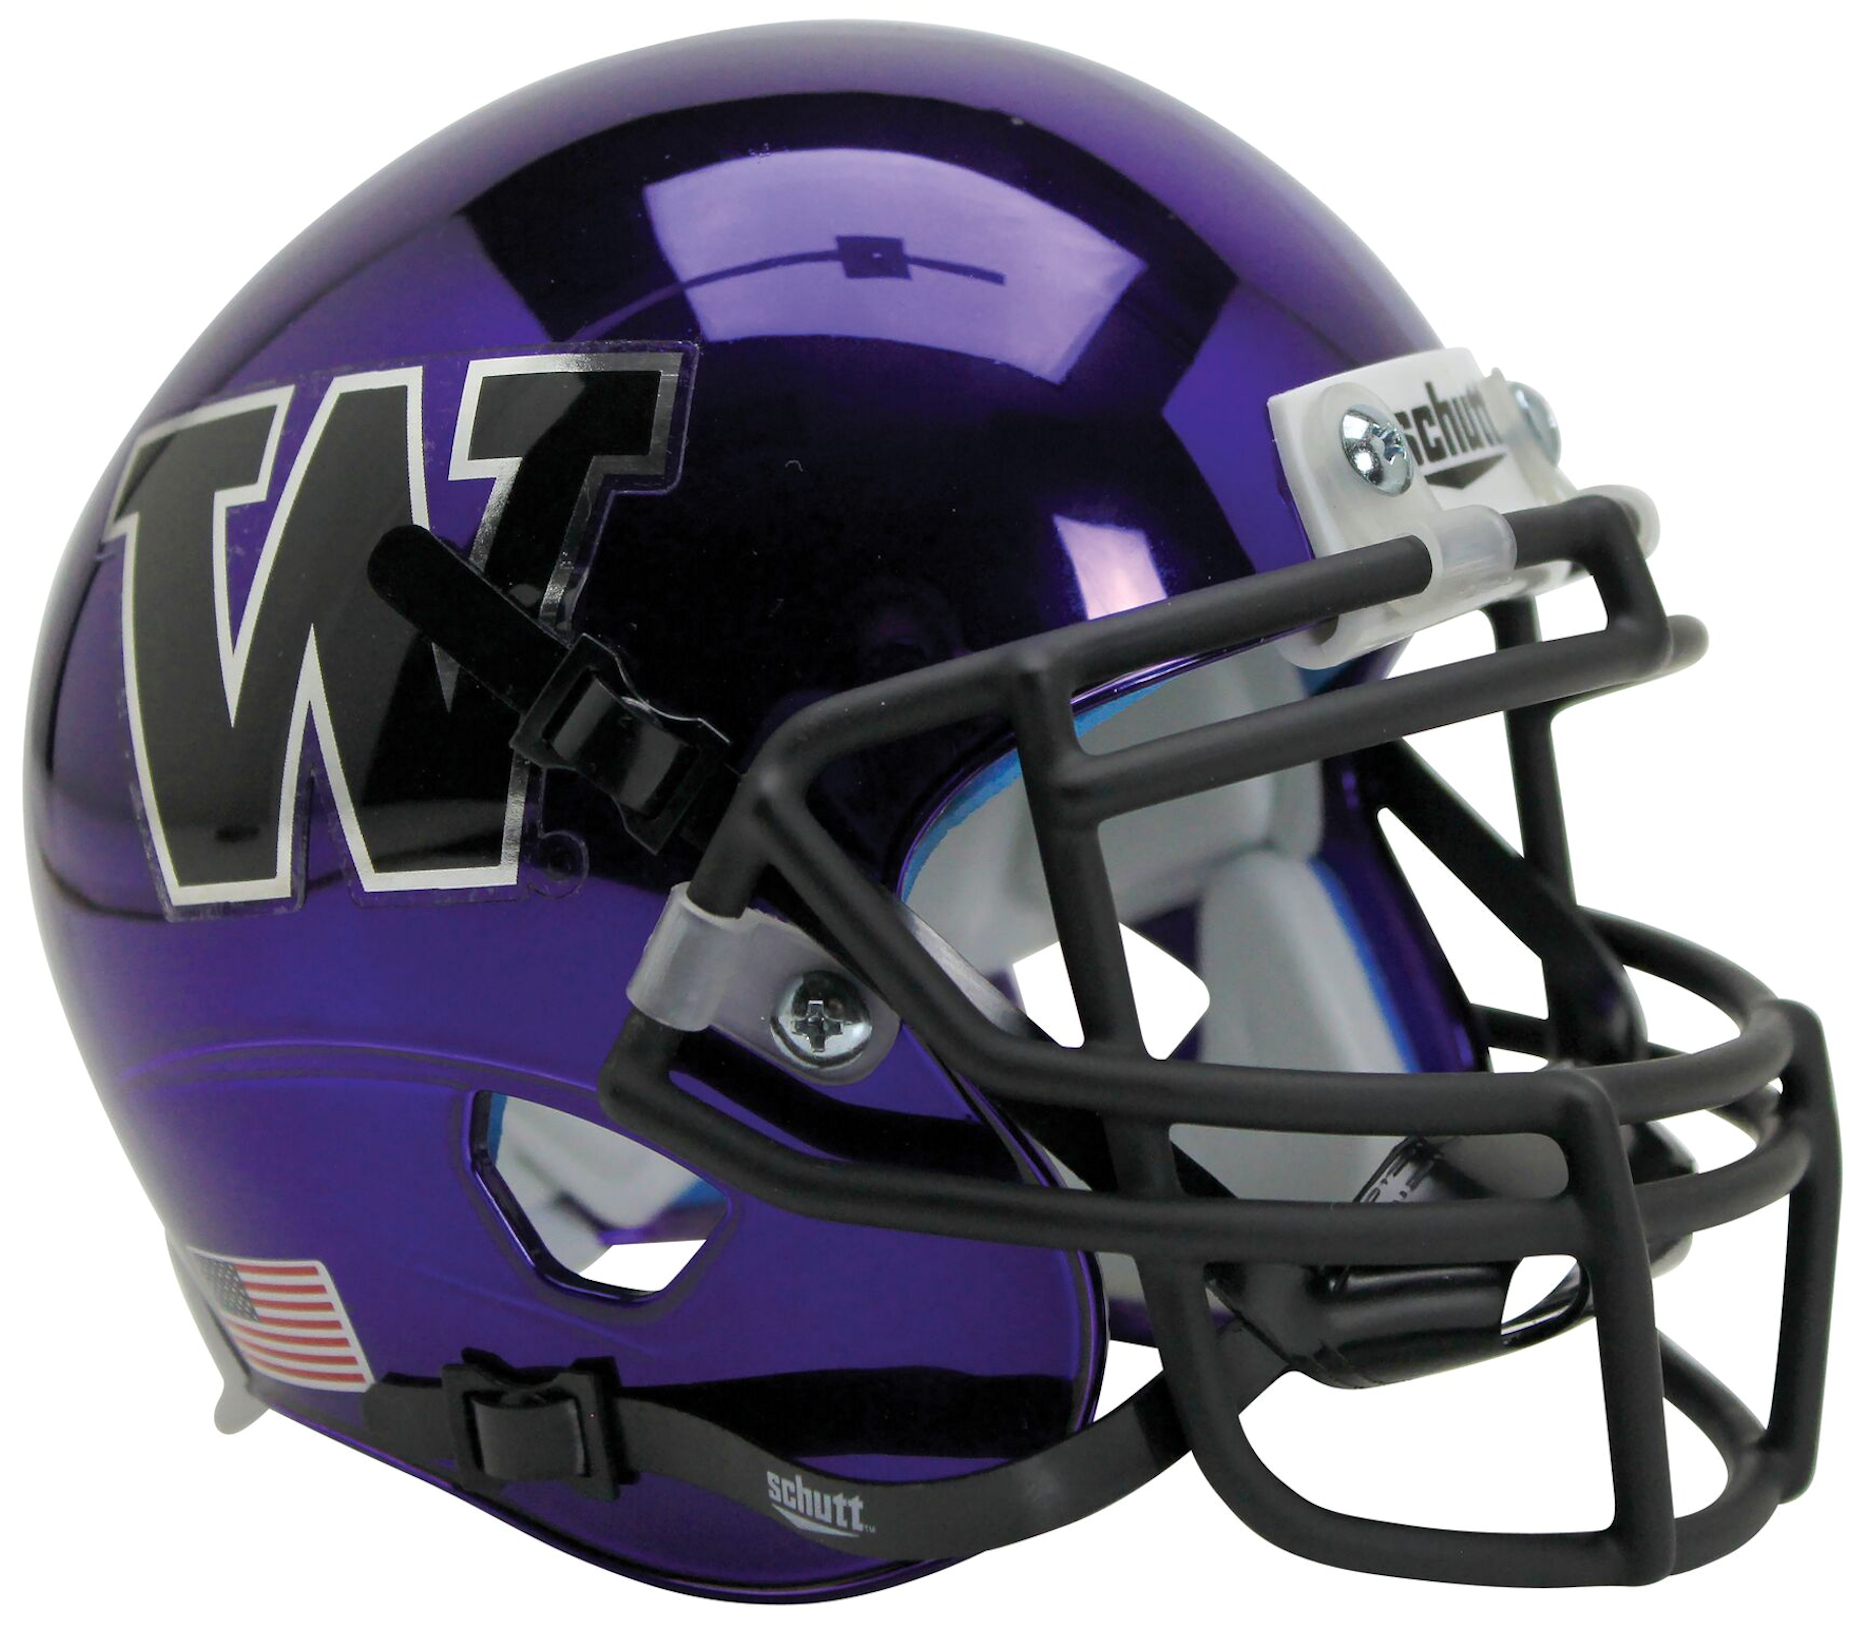 Washington Huskies Miniature Football Helmet Desk Caddy <B>Chrome Purple</B>